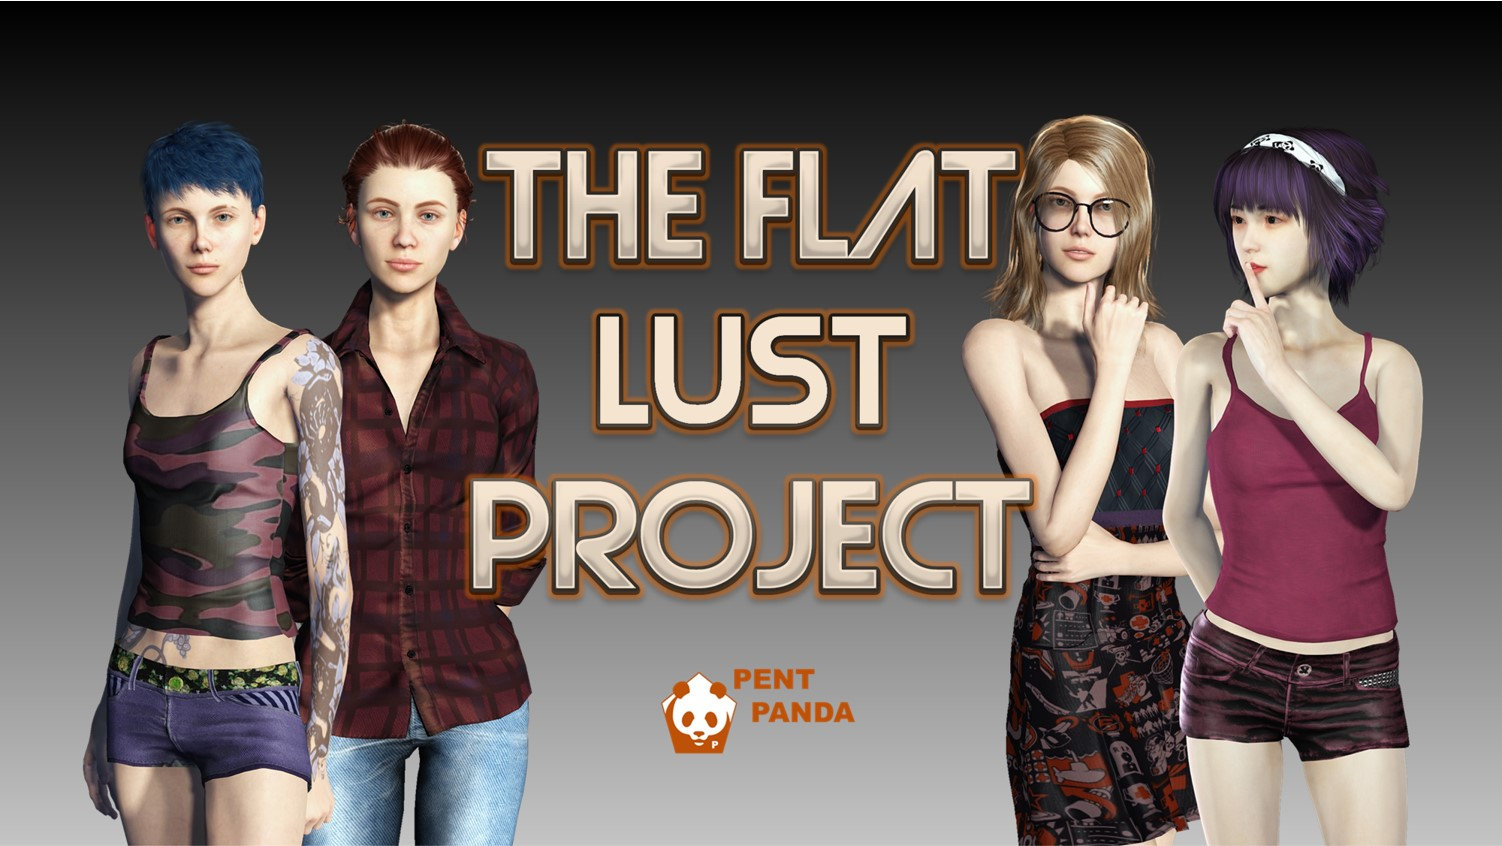 The Flat Lust Project Main - Haru's Hare